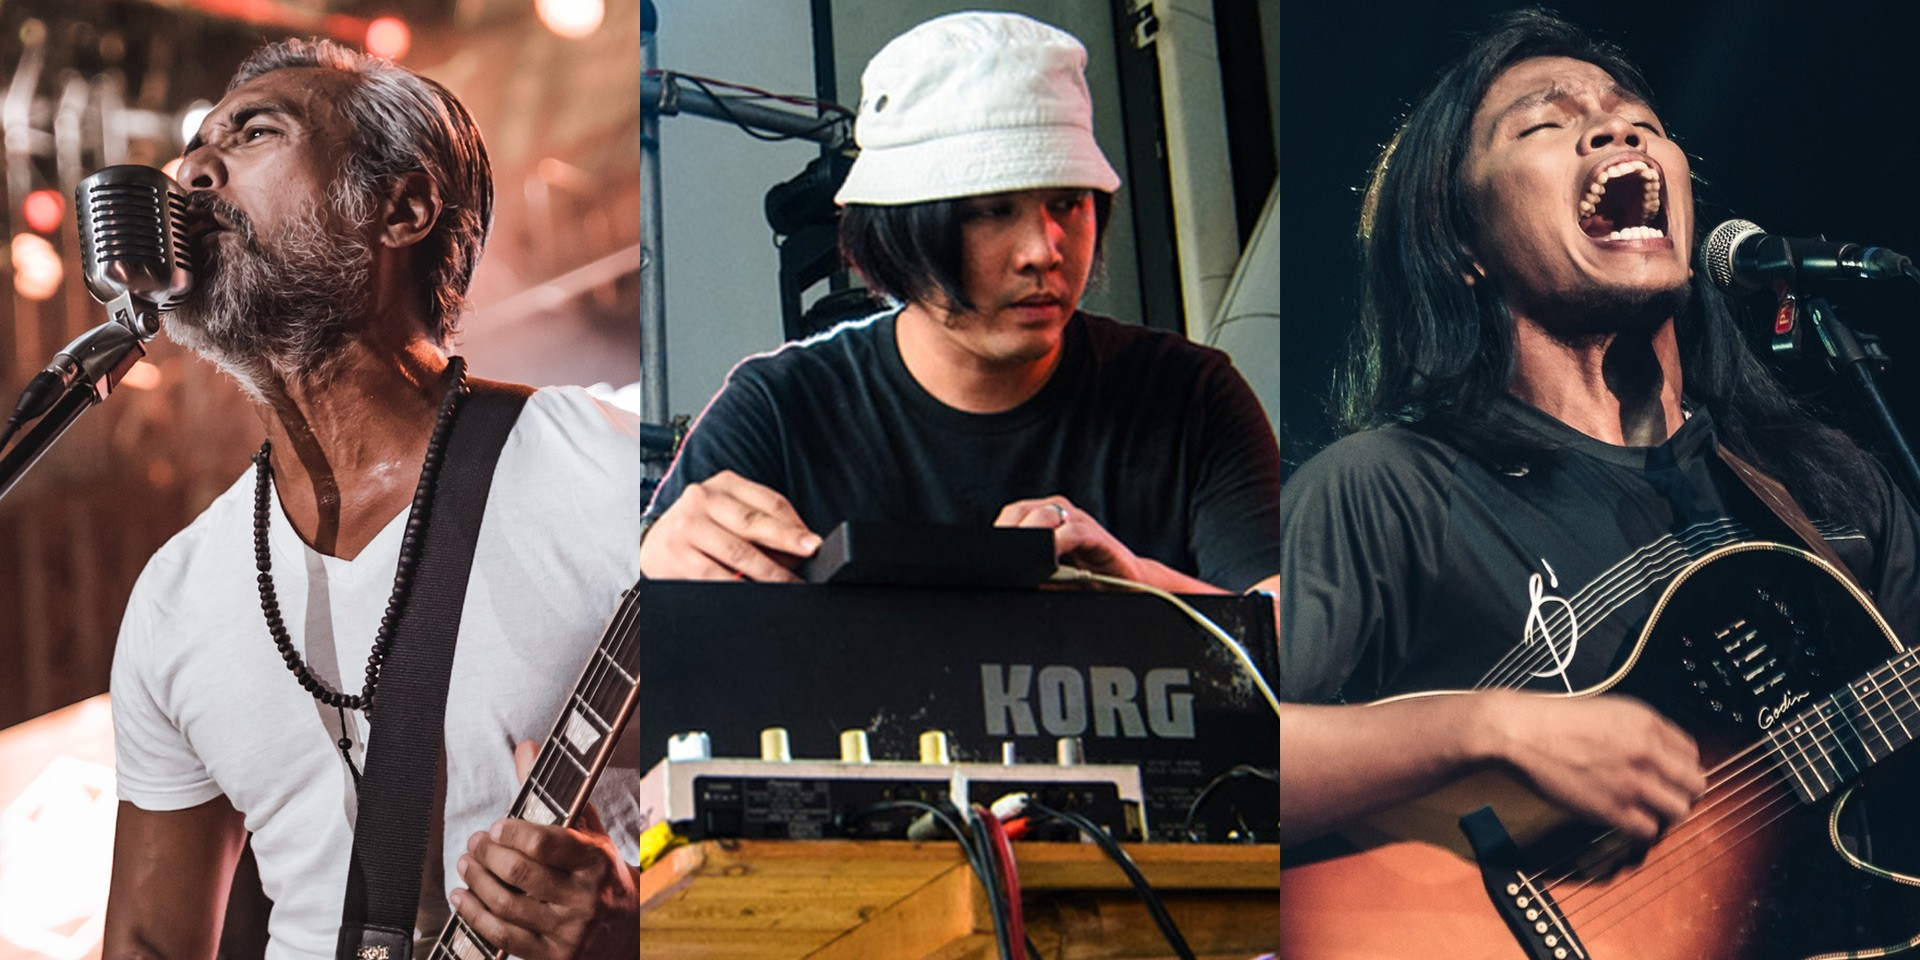 Franco, Tarsius, Bullet Dumas, and more to perform at Leave to Live Surf Yoga Music Fest in Siargao